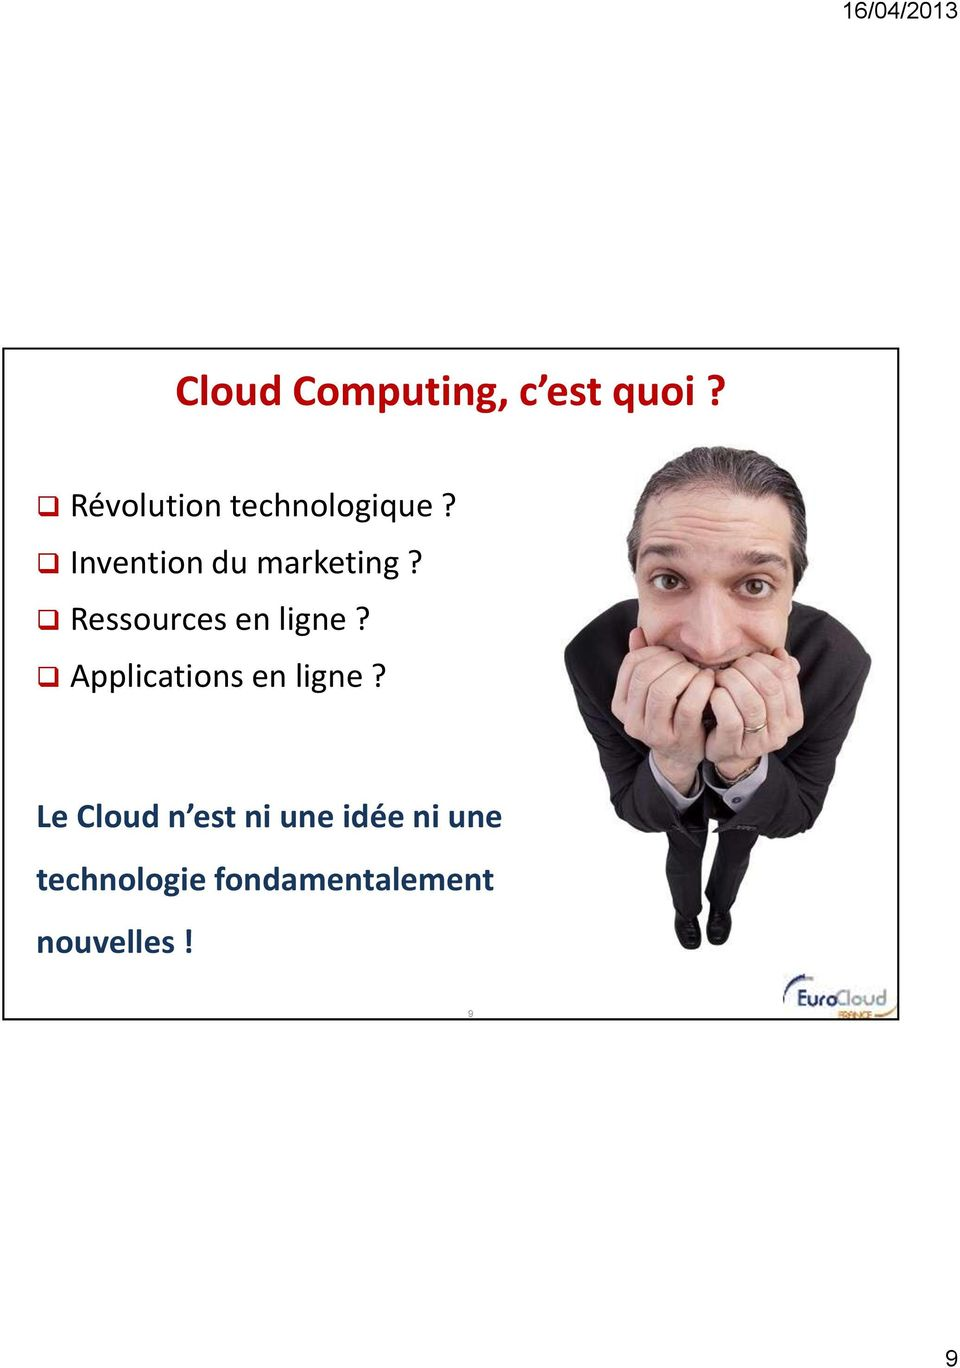 Ressources en ligne? Applications en ligne?